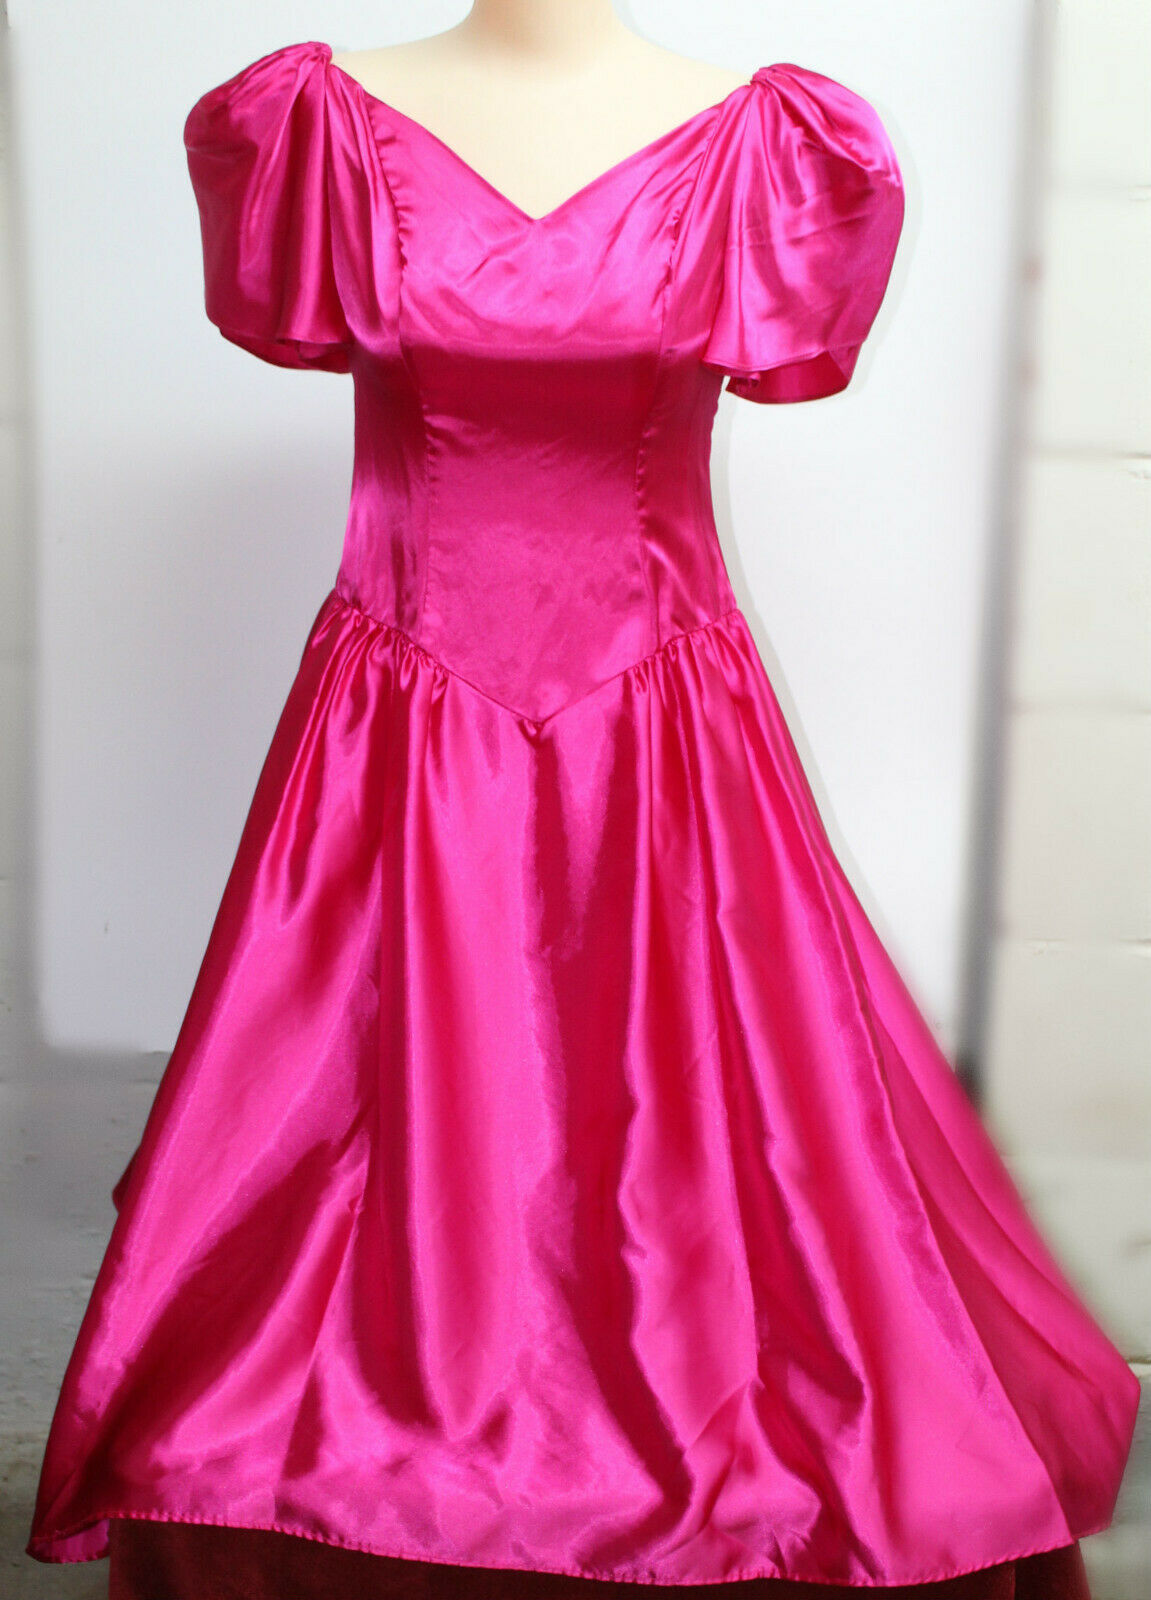 Vintage Pink Satin Prom Dress with Assymetrical High Low Skirt